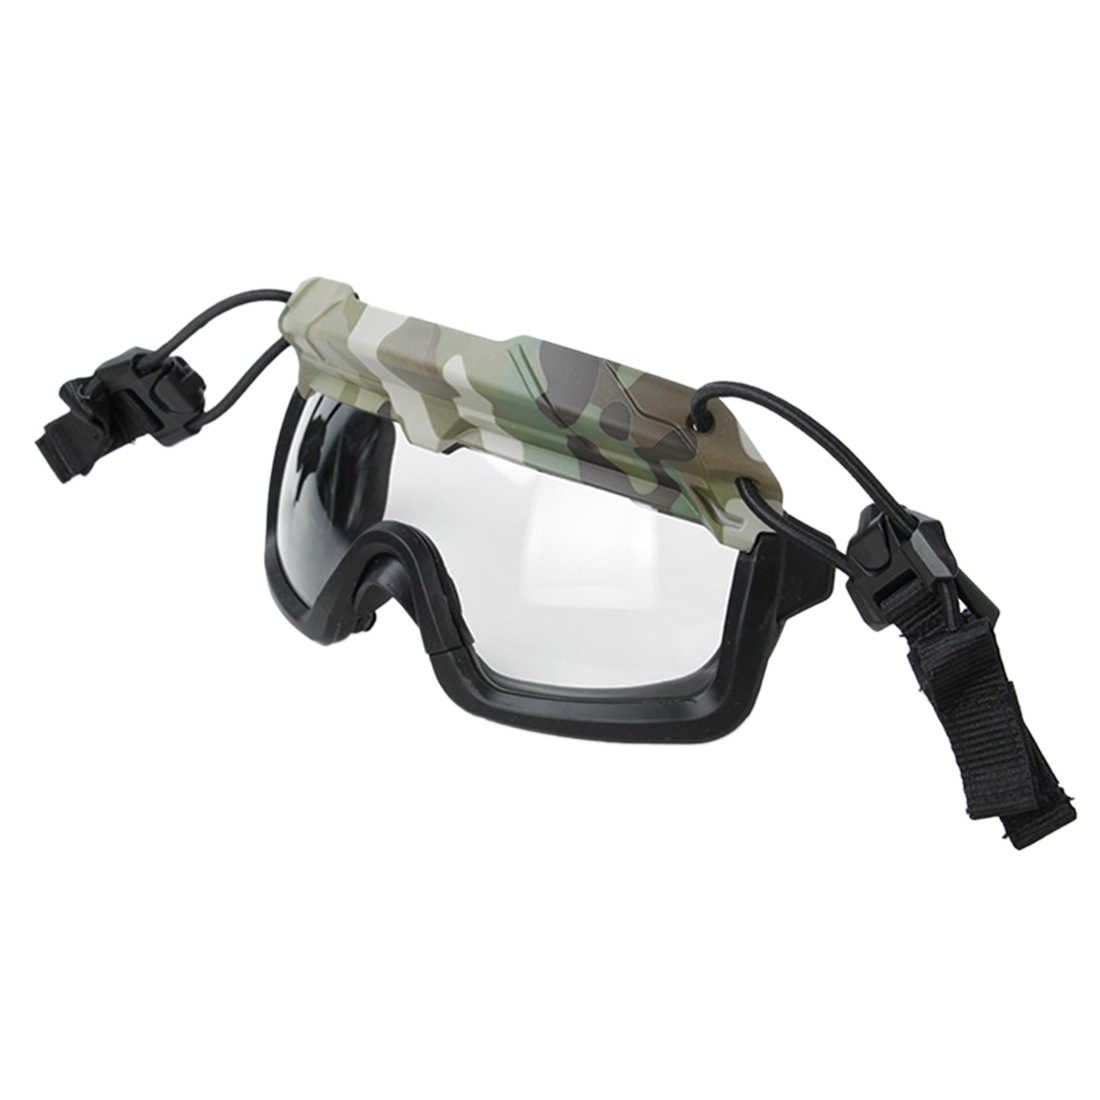 High Quality Anti-explosion Airsoft Tactical Glasses Helmet Safety Goggles Waterproof Eyes Protector Outdoor Paintball Goggles